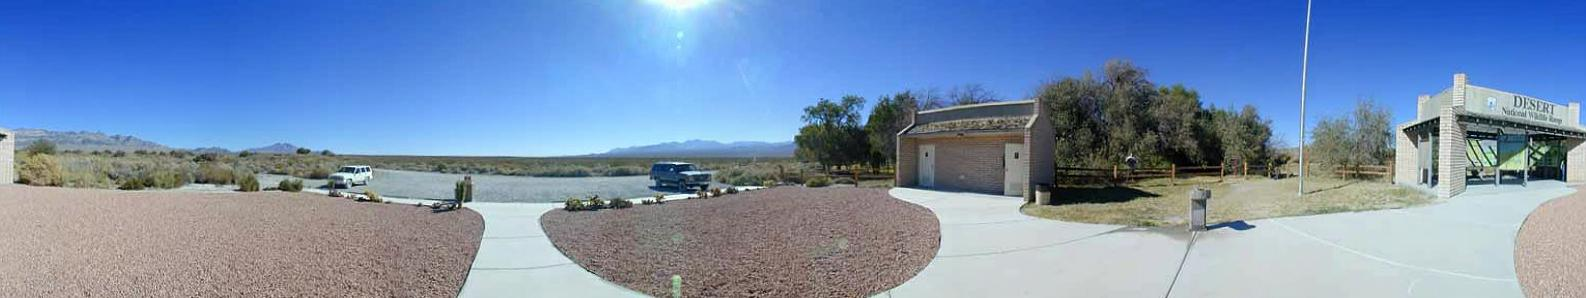 Panorama taken in front of the Corn Creek Field Station